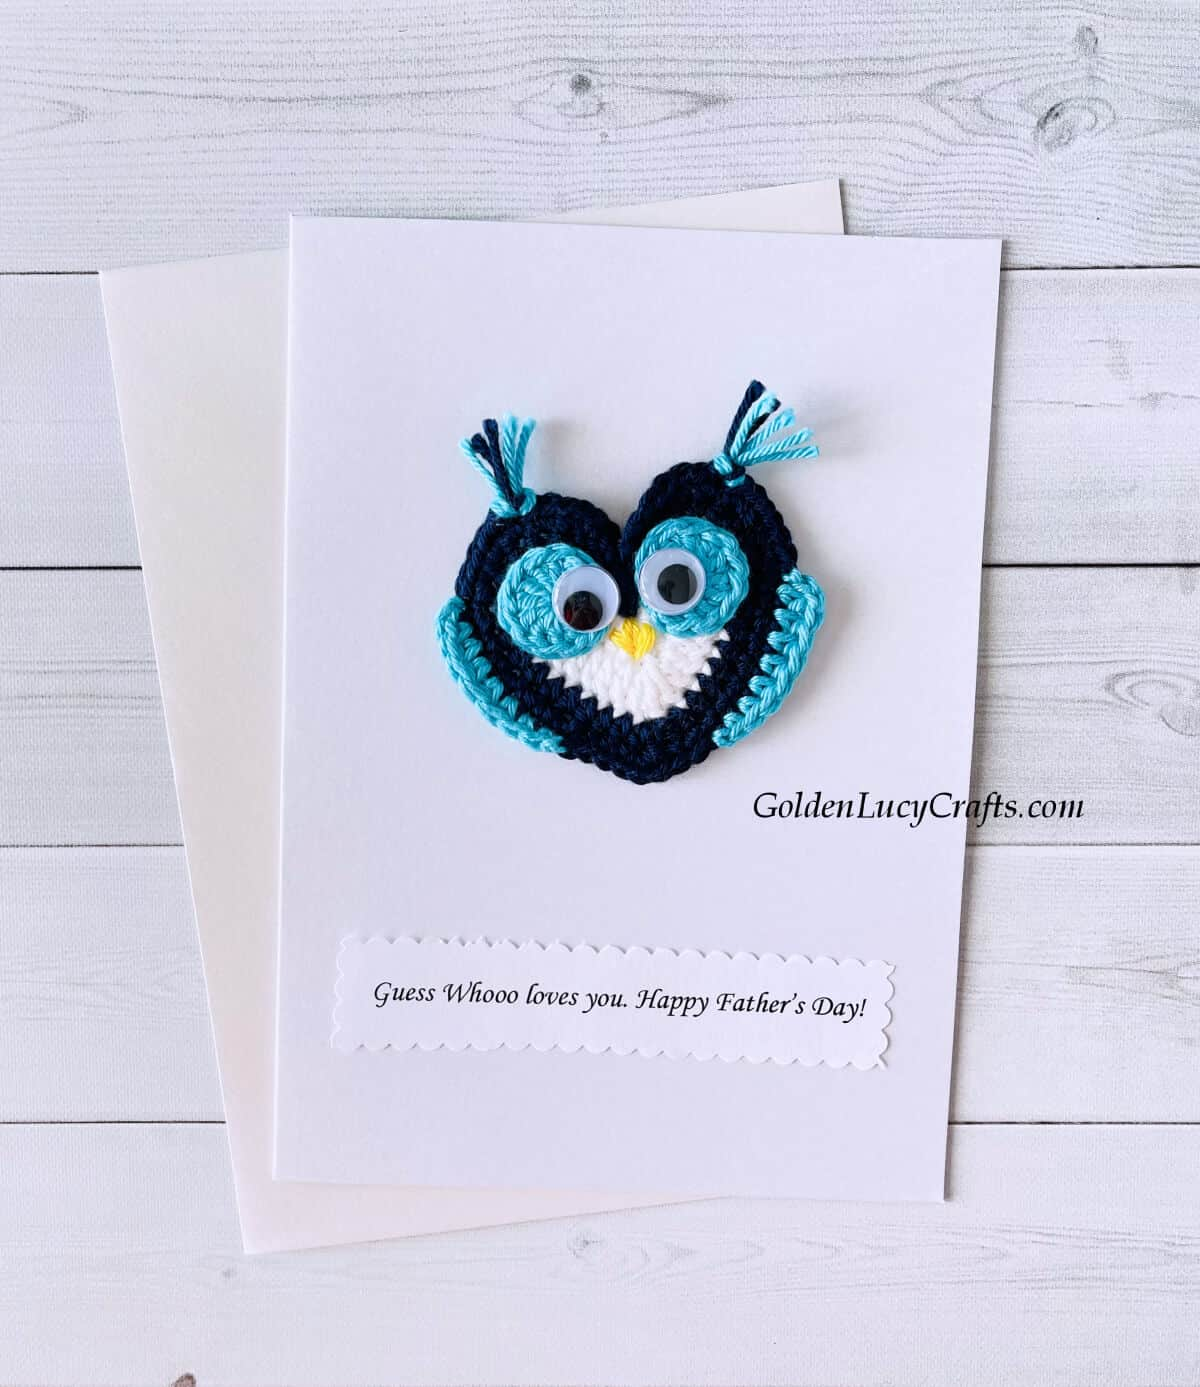 """Crochet owl applique on a white card with the text """"Guess whoo loves you. Happy Father's Day!"""""""